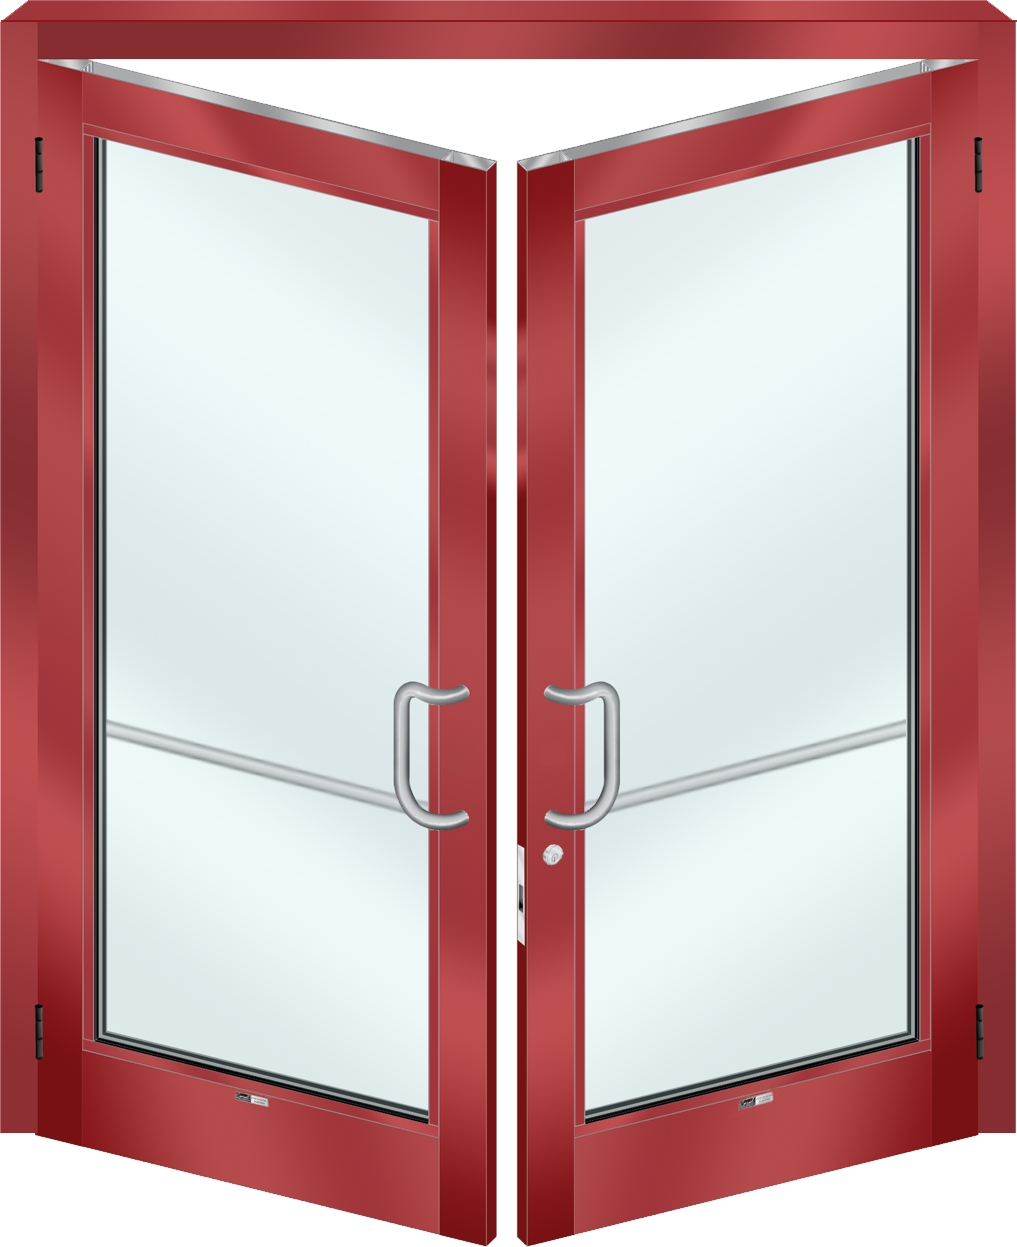 Entrance Doors Aluminum Entrance Door Systems Coral Coral Architectural Products Hi